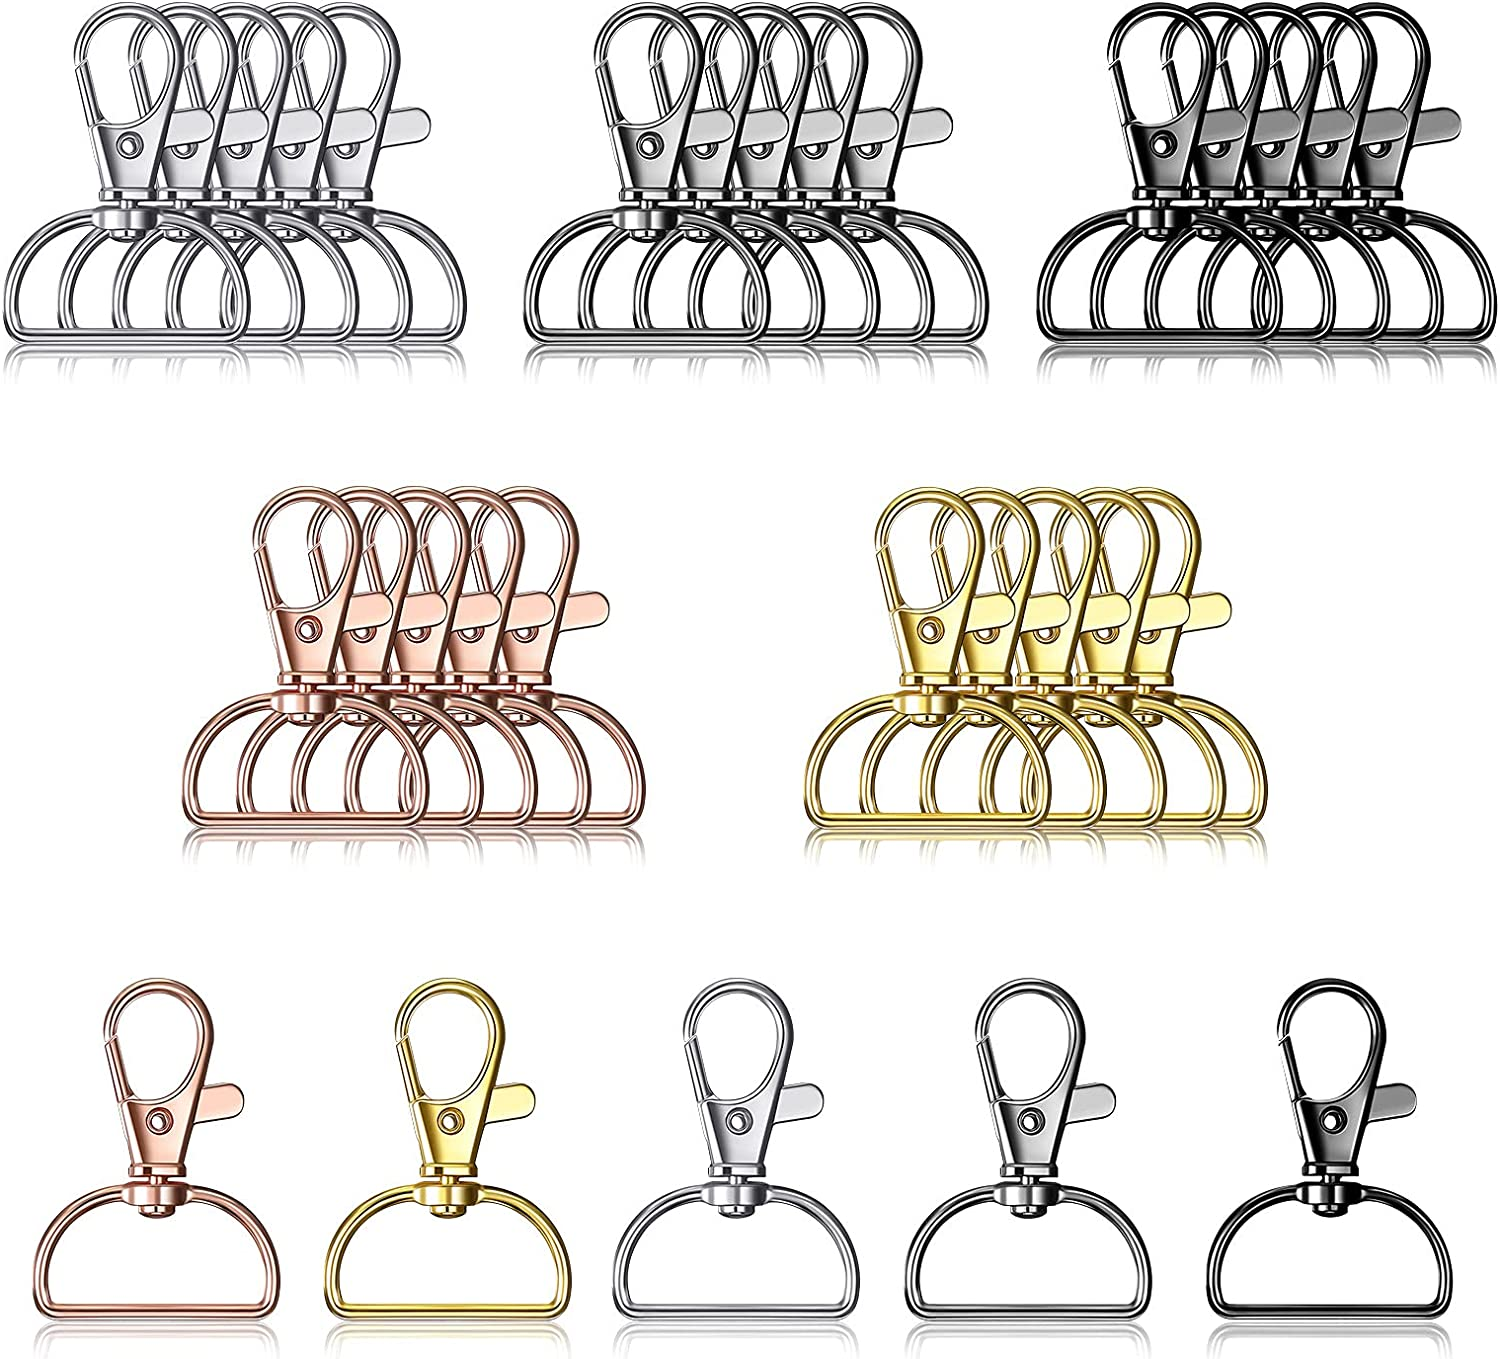 25 Pieces Metal Swivel Special price Clasps Lanyard Snap H Keychain Ranking TOP19 Clip Hooks